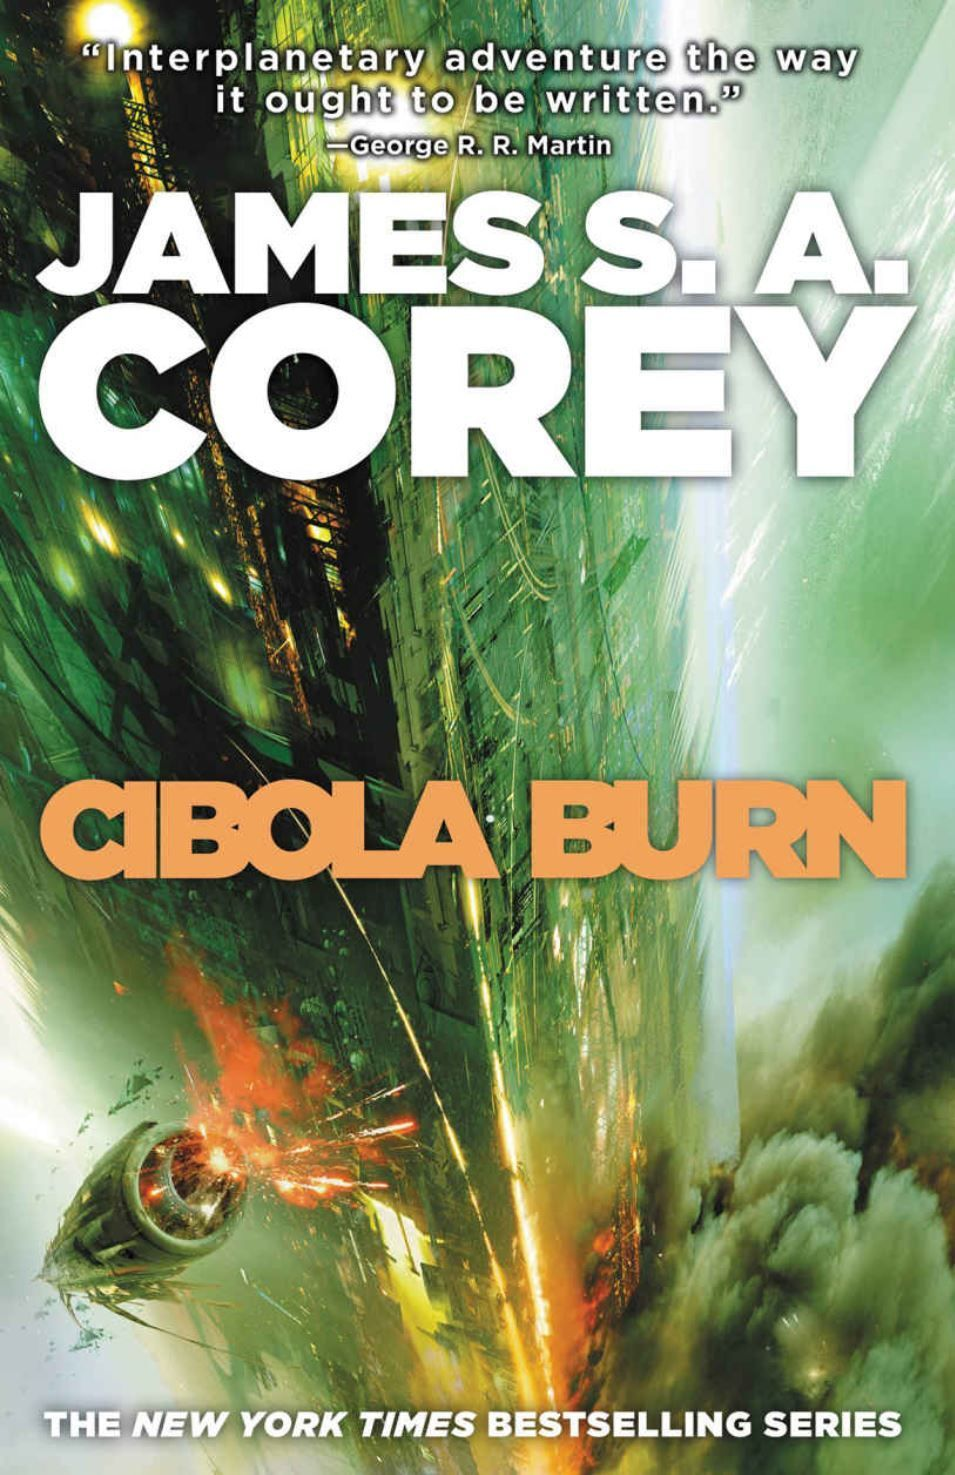 Cover art for Cibola Burn features the Rocinante and weird alien structure on the surface of Ilus. It has a green hue with yellow and orange explosions.